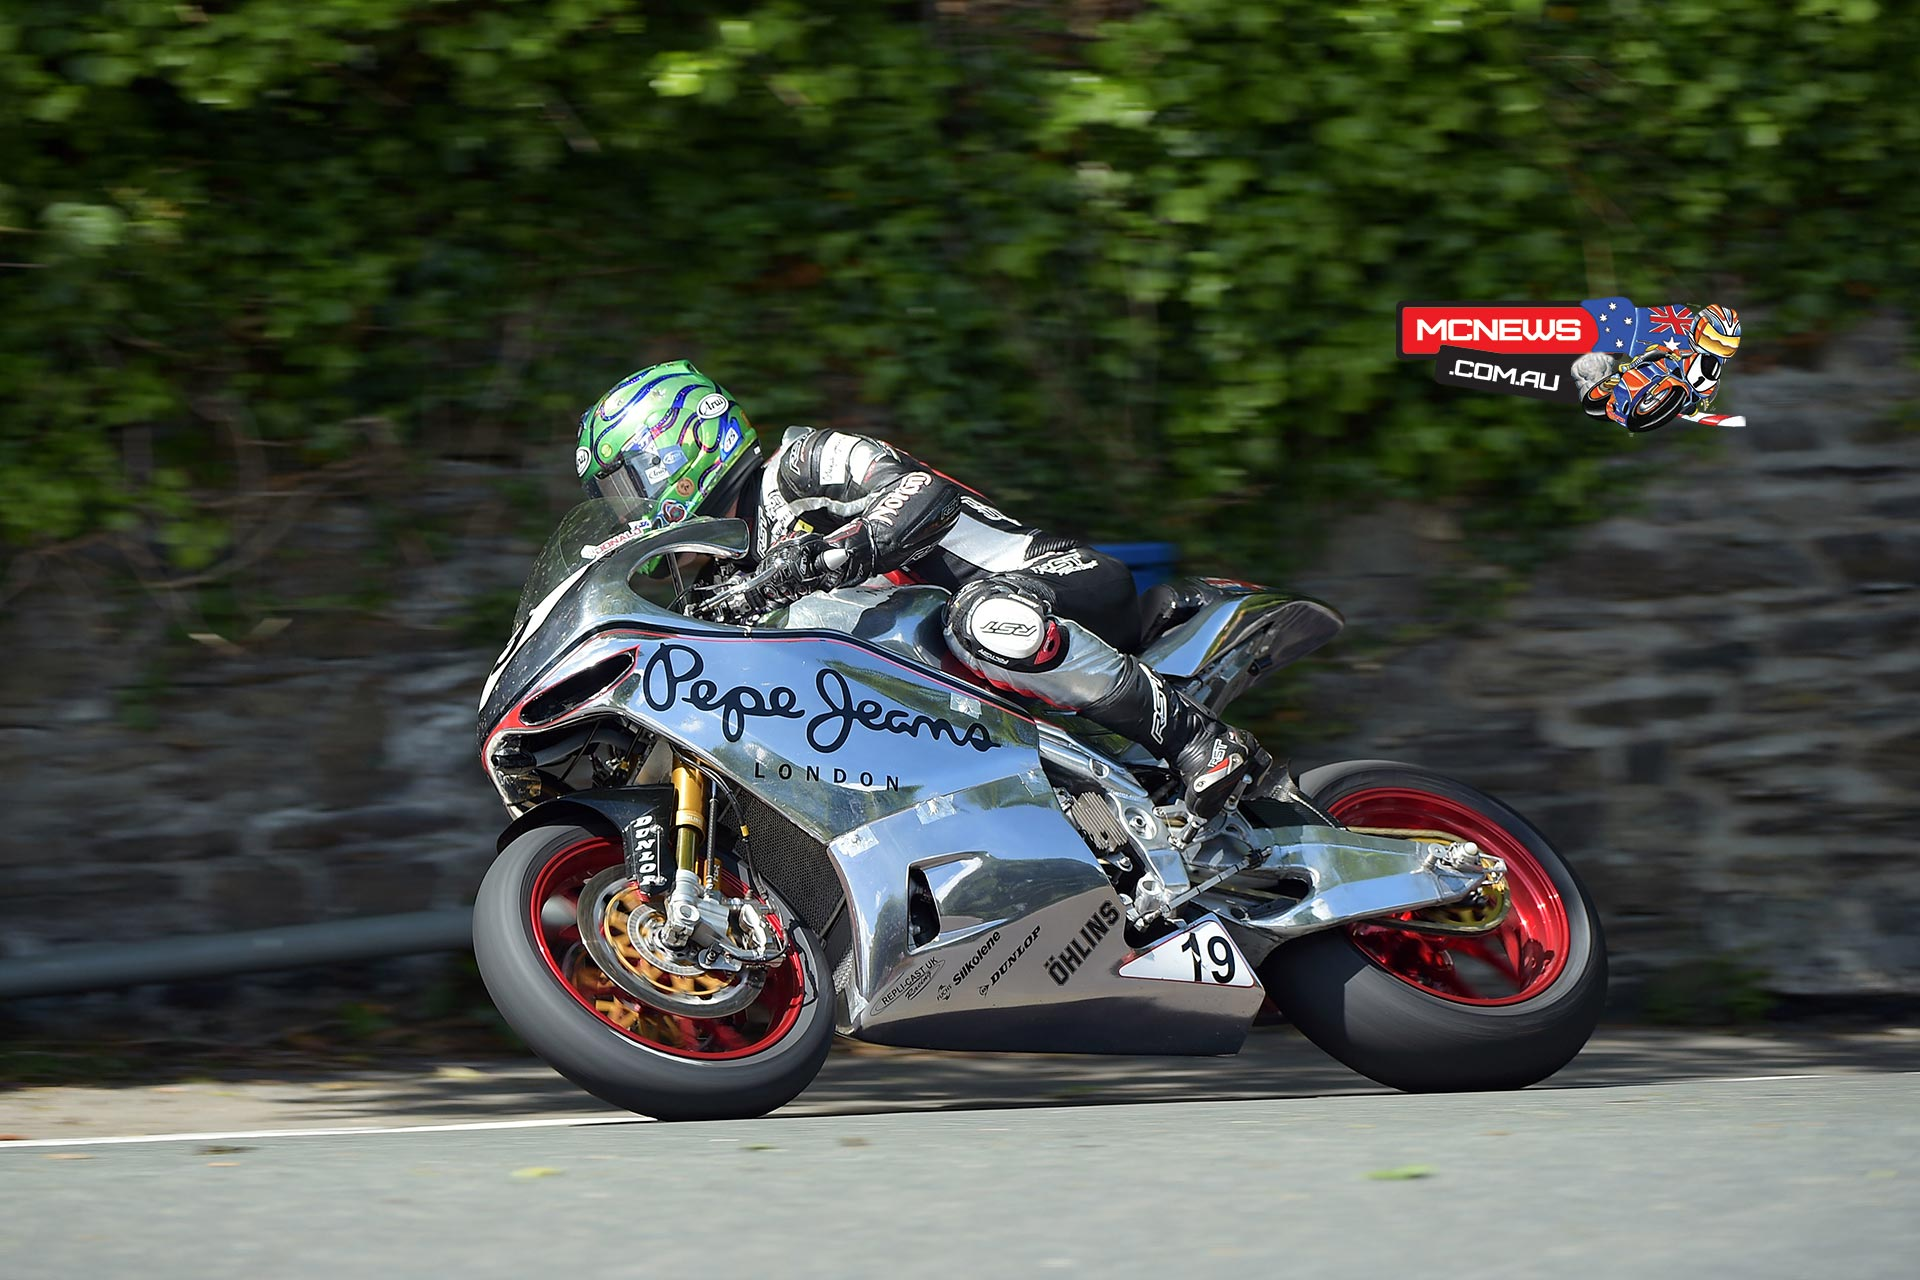 Cameron Donald at the 2015 IOM TT